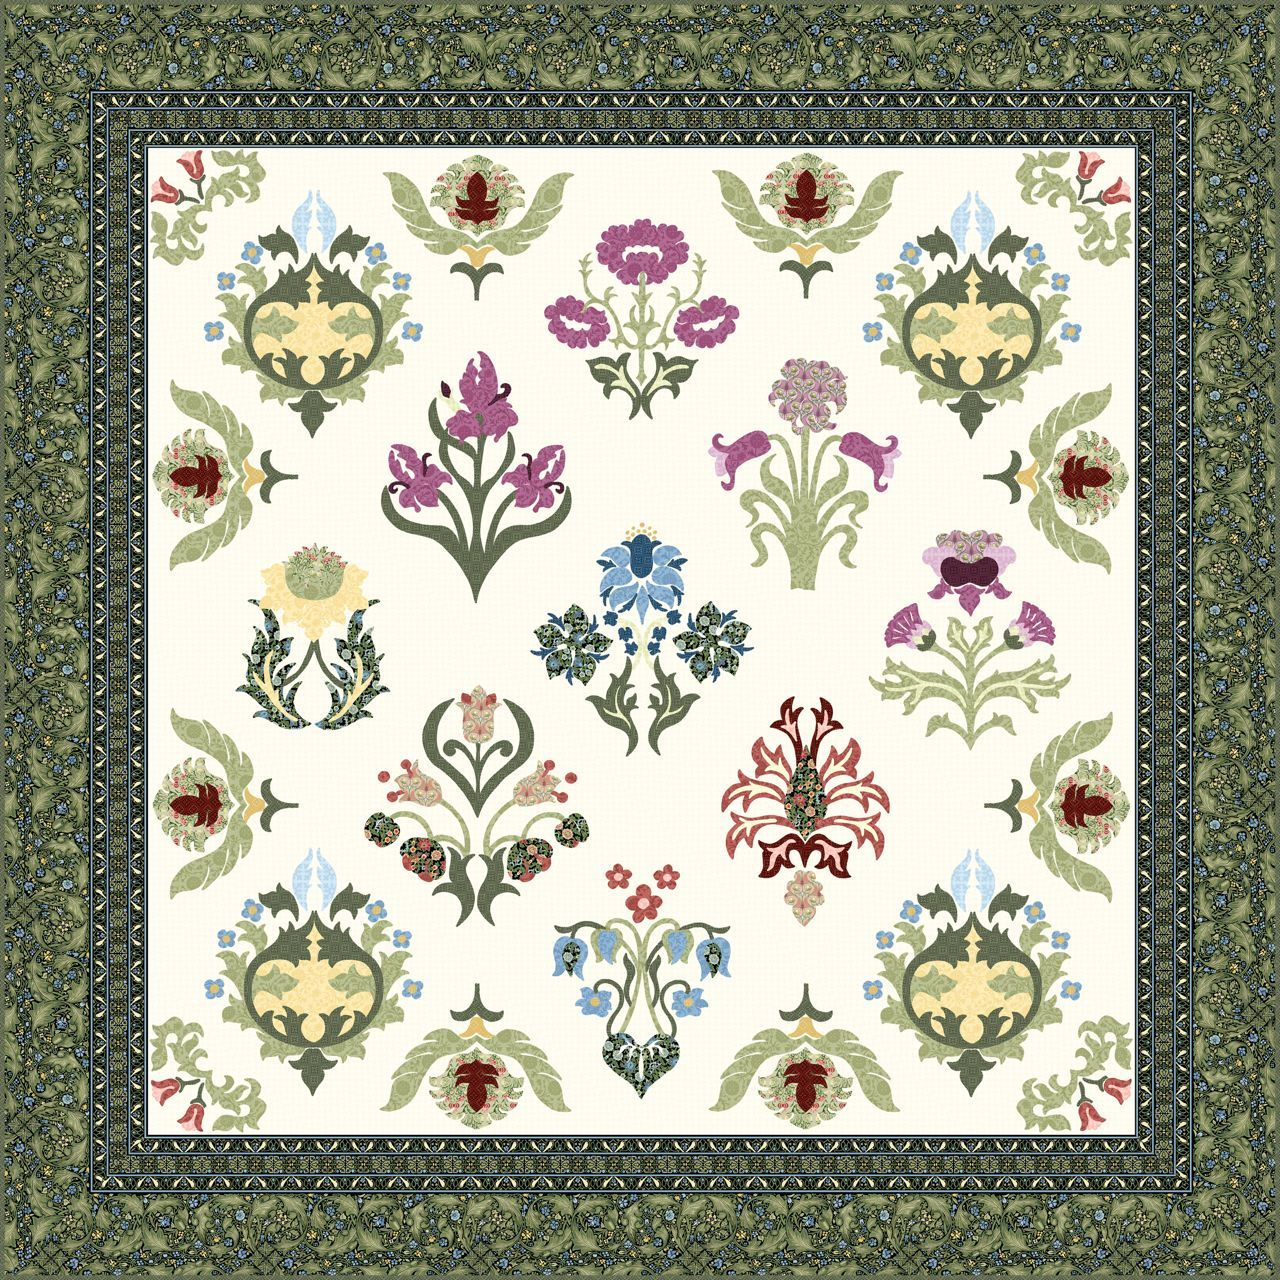 Quilt Gallery and Patterns - Williams Morris | Quilting | Textiles